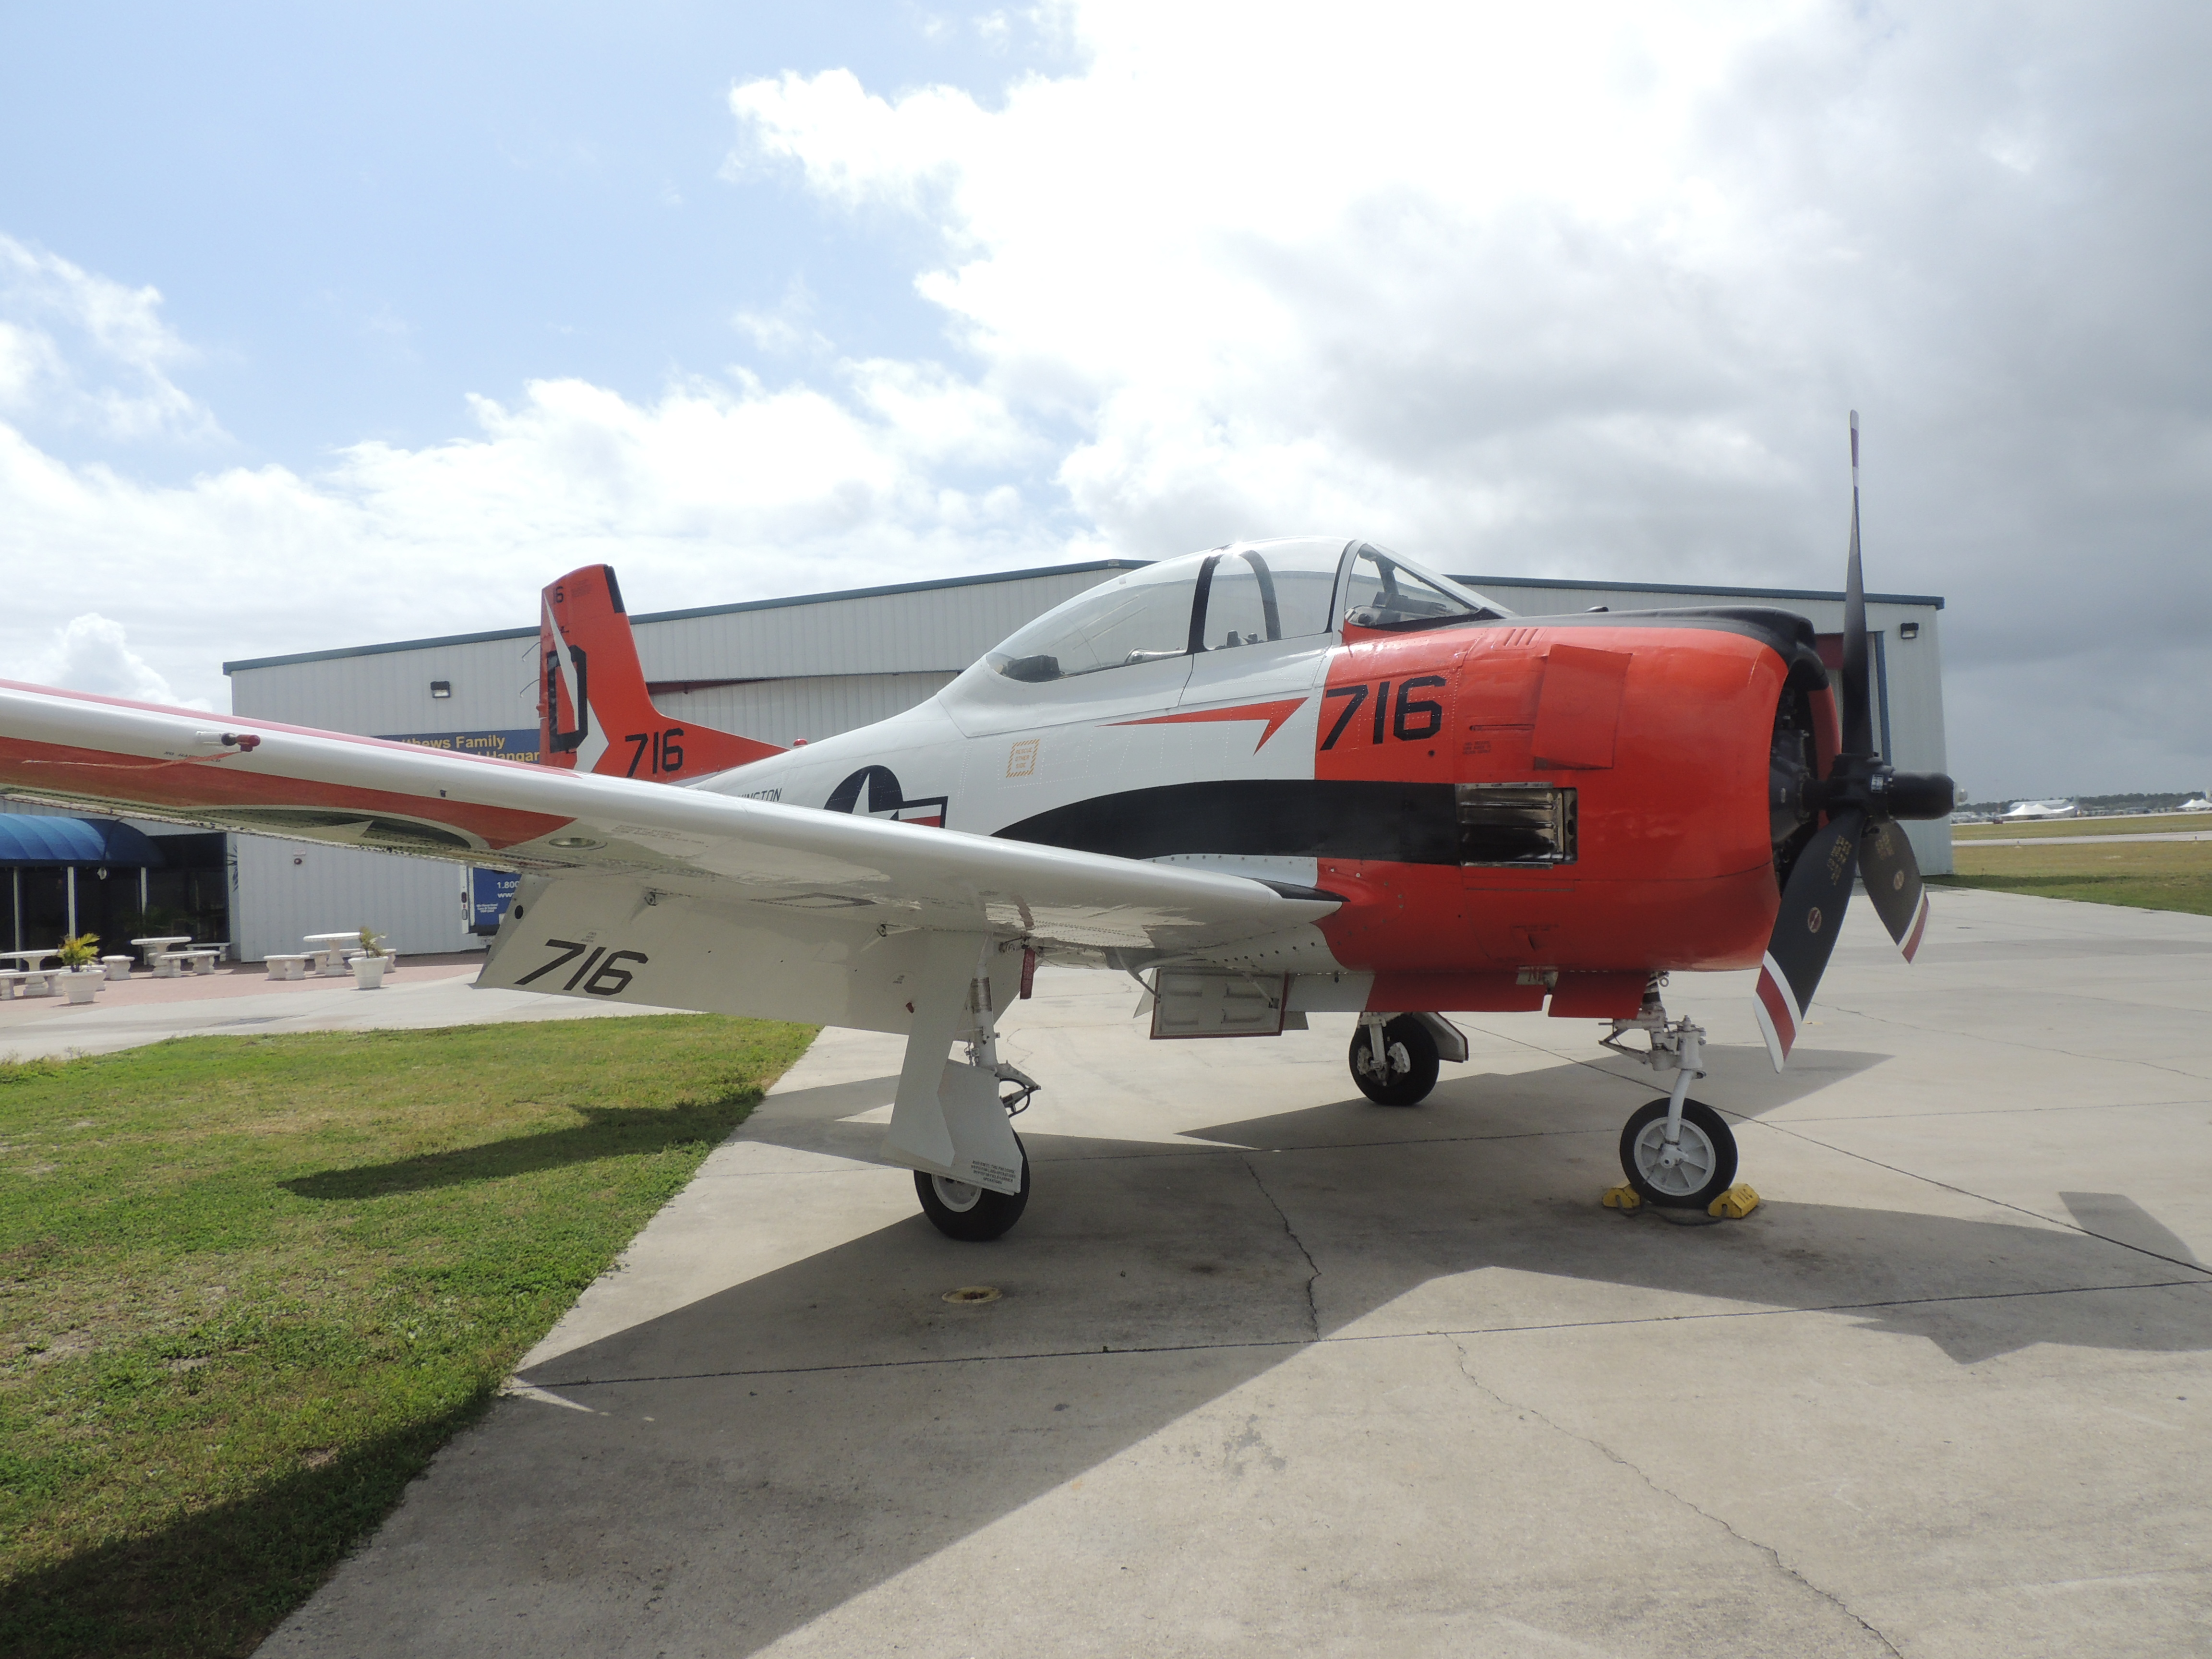 North american t-28 trojan photo